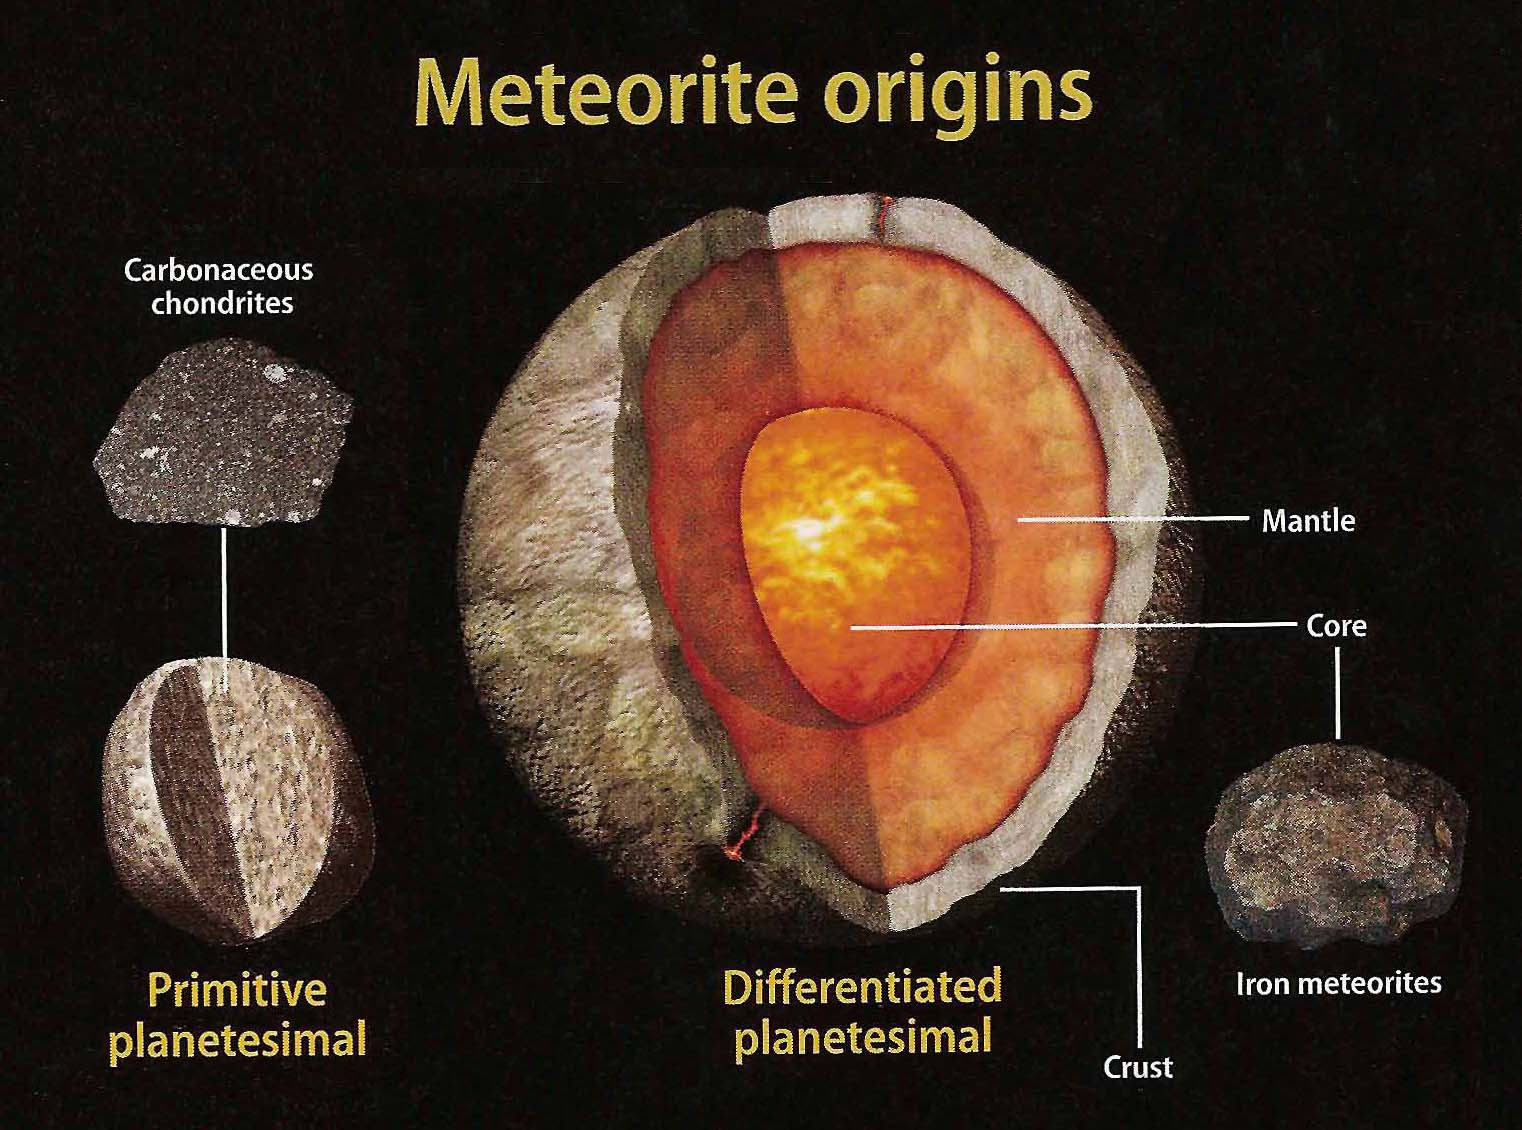 meteorite_origins_ed2_smallfile.jpg